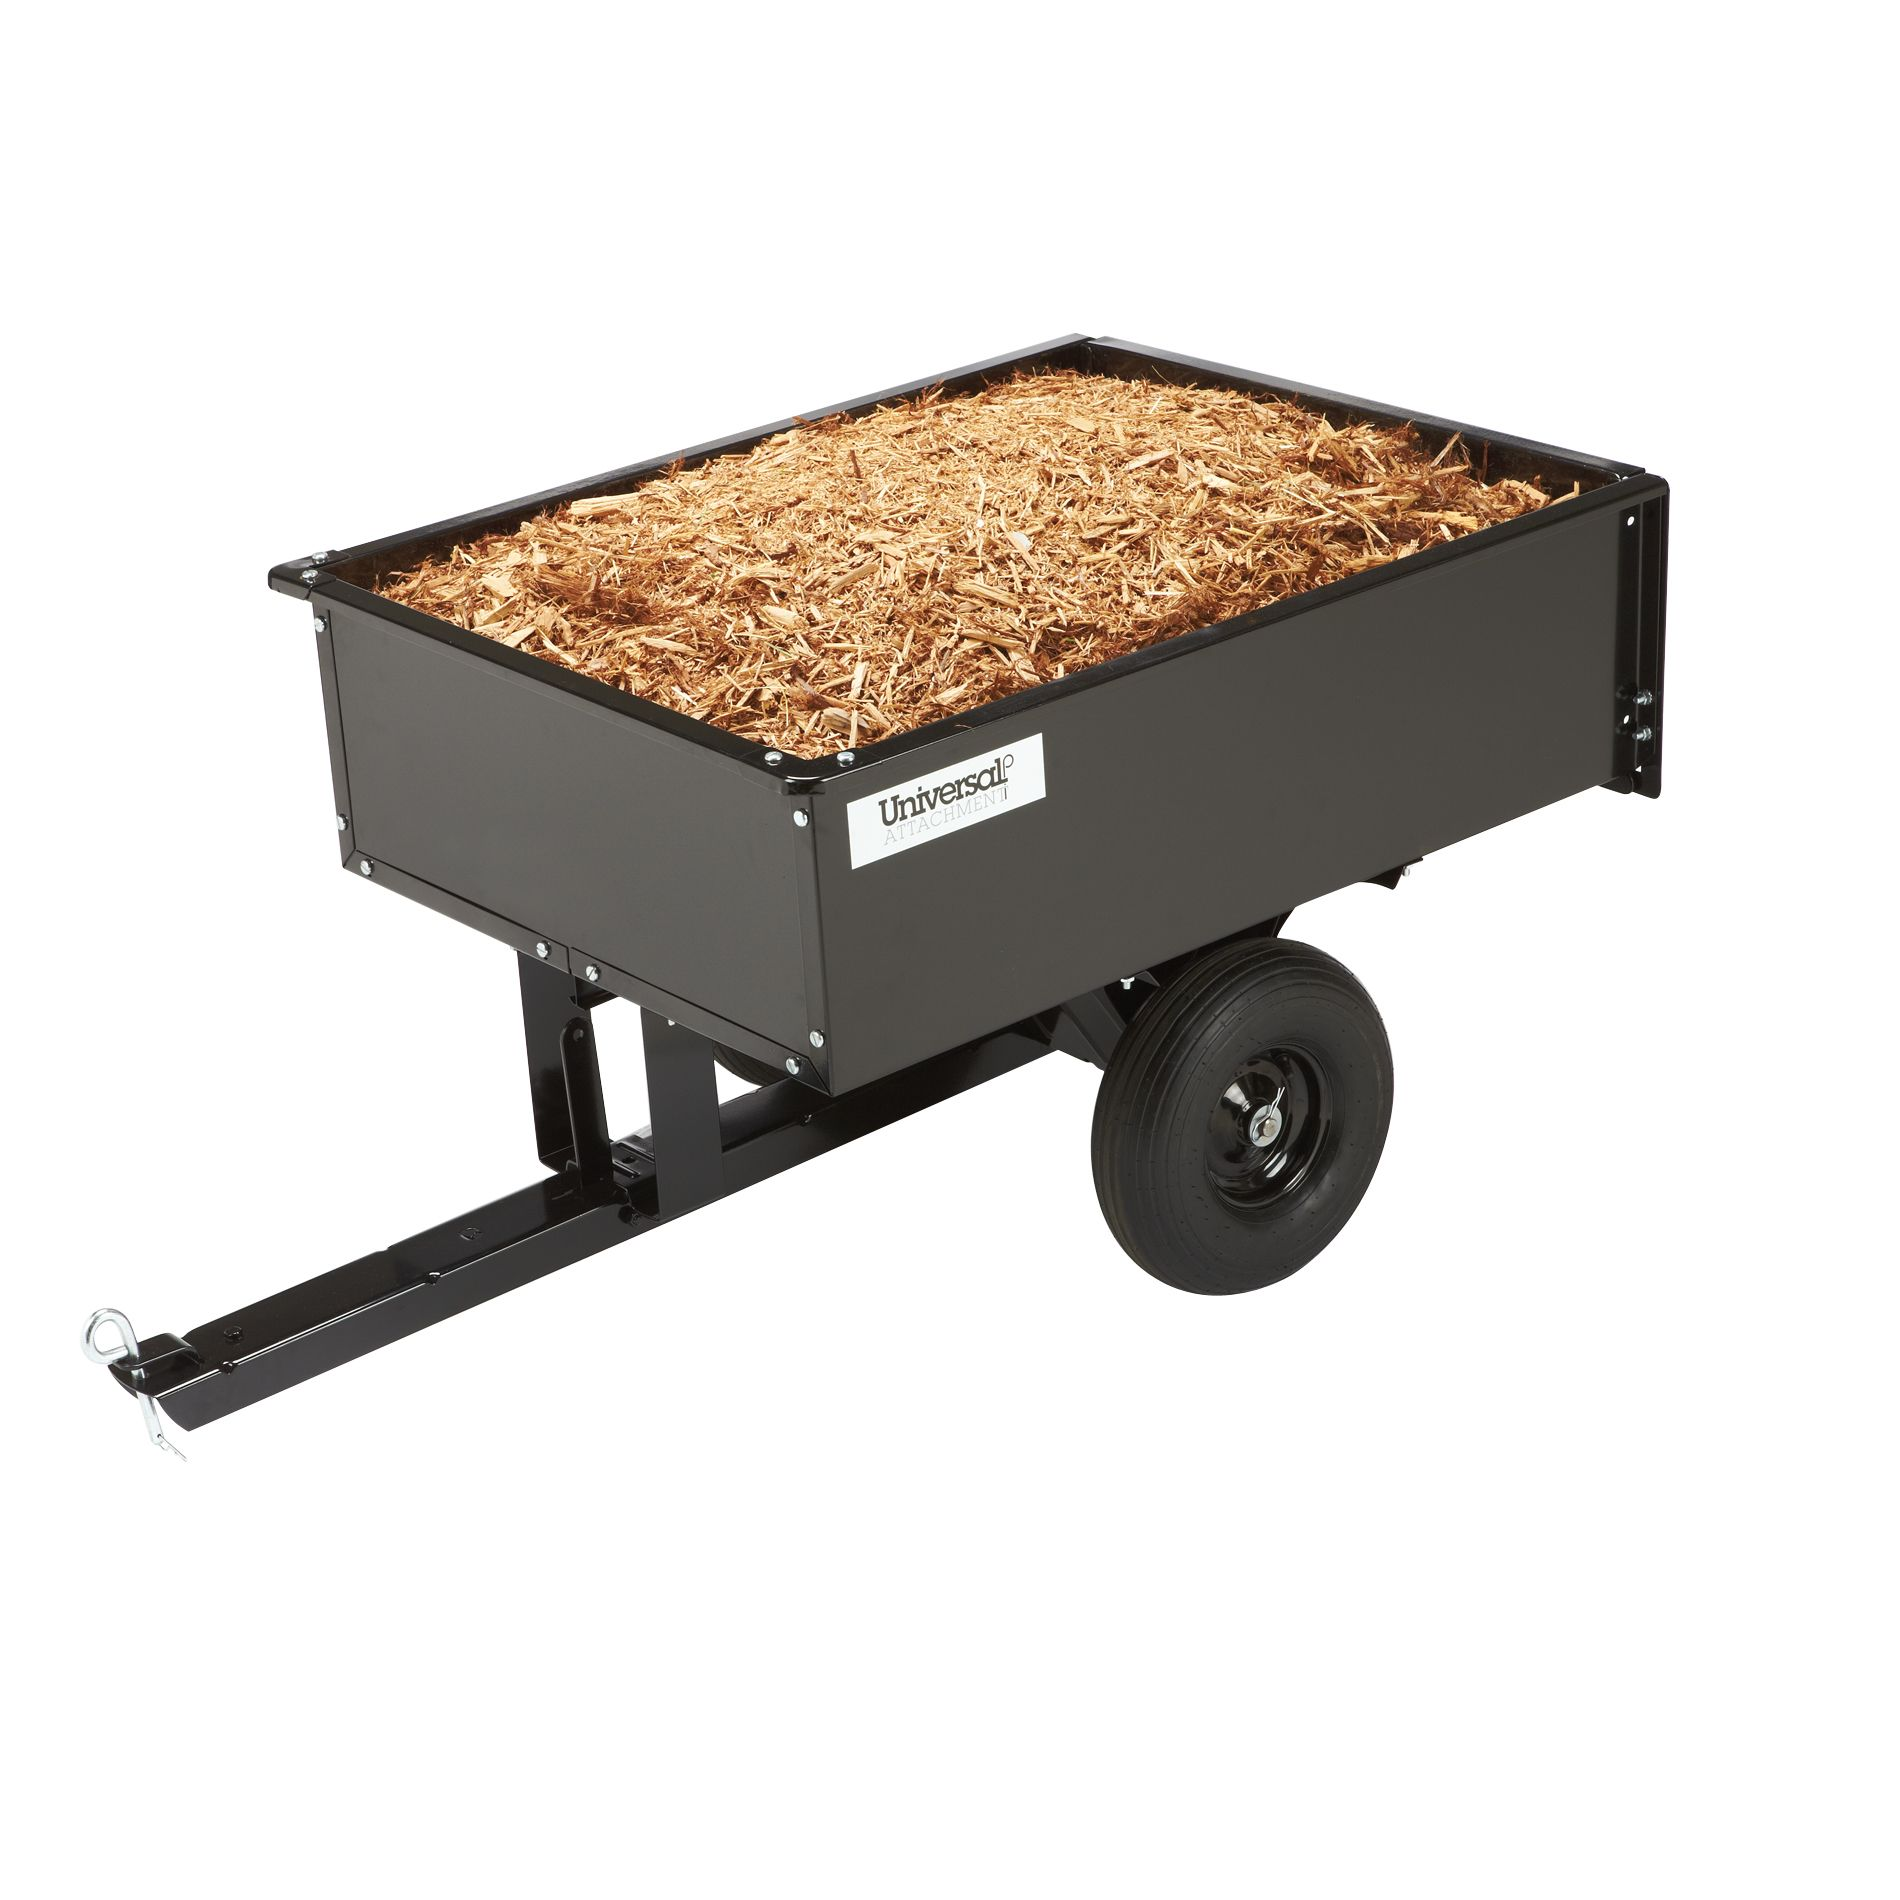 Universal 10 cu. ft. Steel Dump Cart